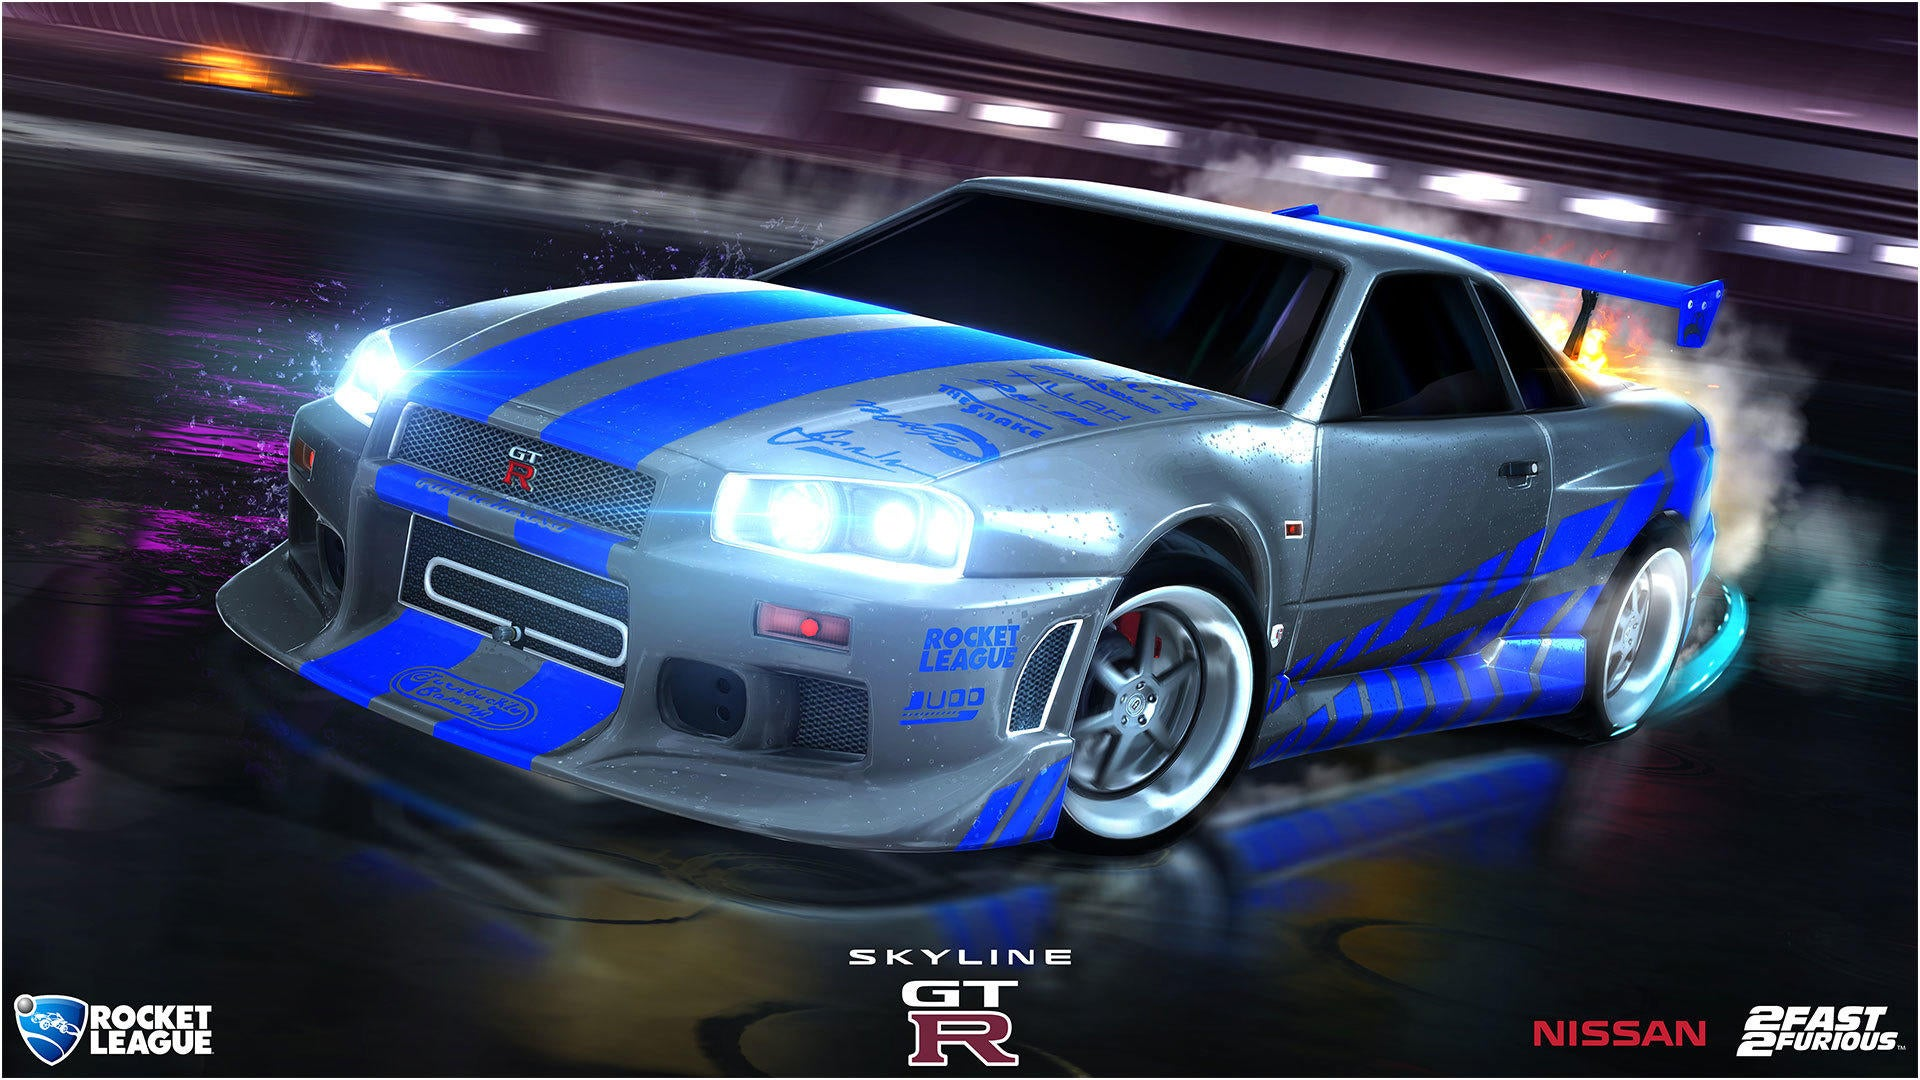 Fast Furious Rocket League Official Site